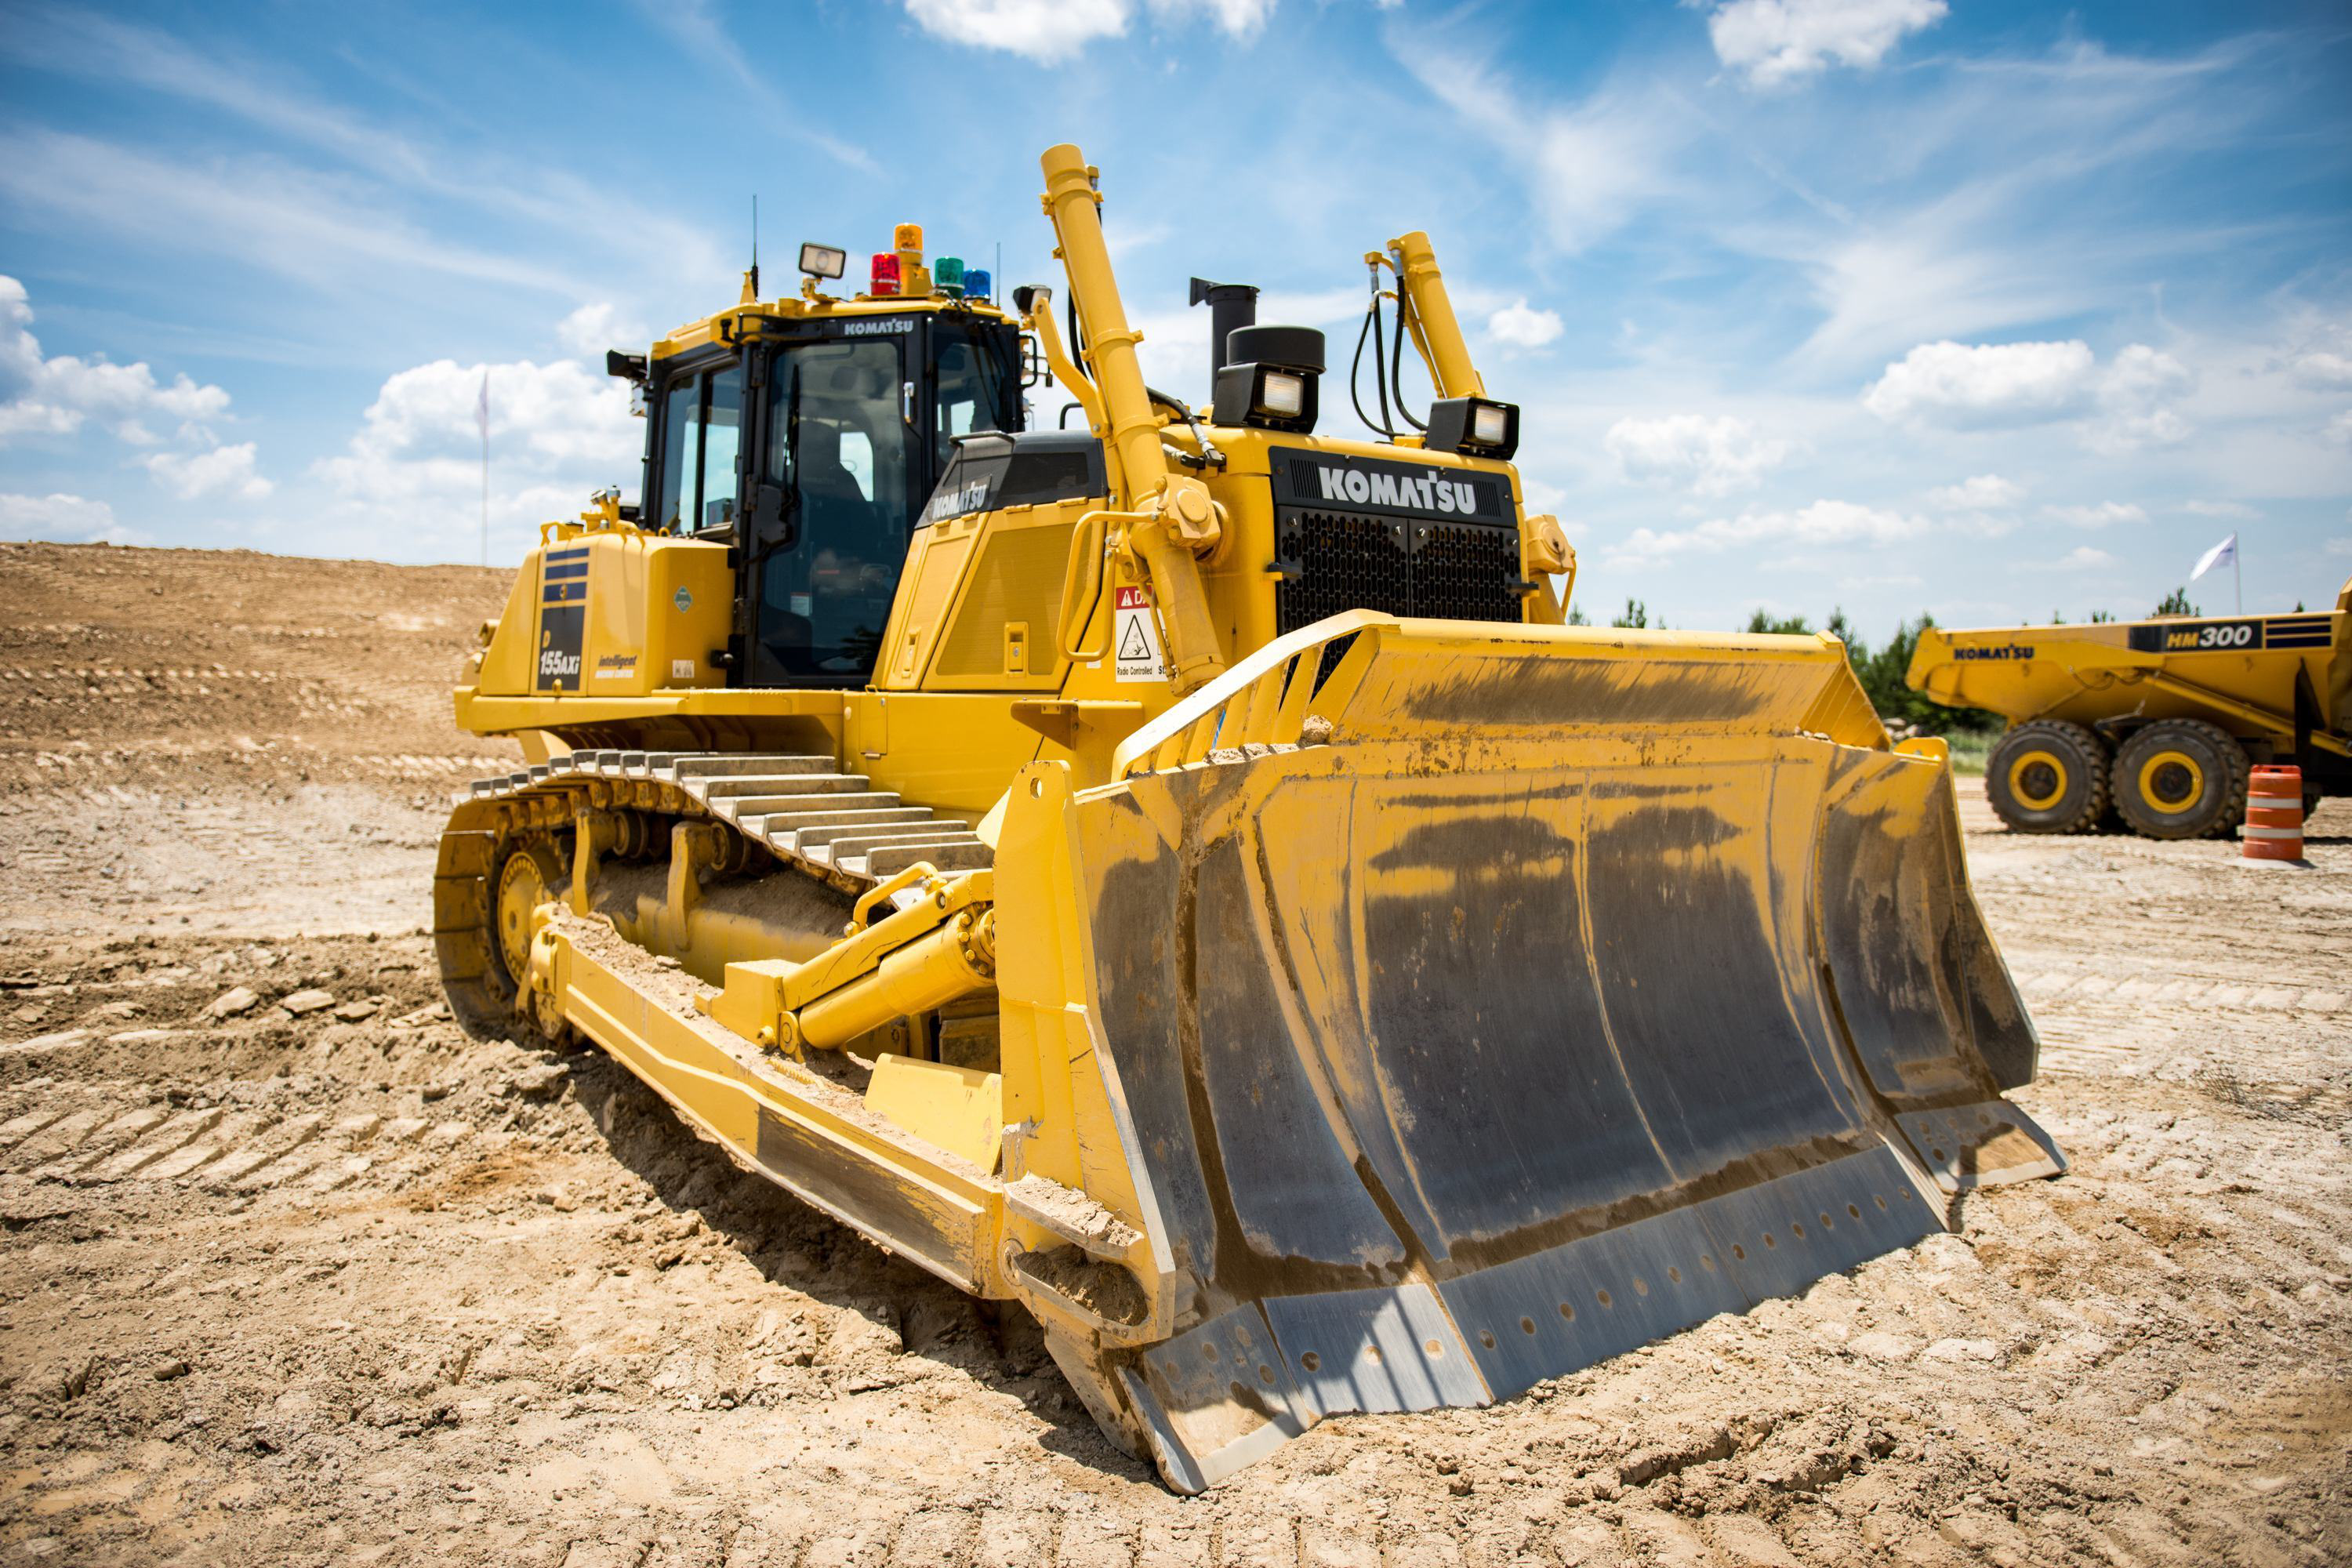 Komatsu has sold more than 10,000 intelligent Machine Control machines, a not insignificant number. But the vast majority of contractors have yet to adopt the telematics and machine control technologies these machines employ.